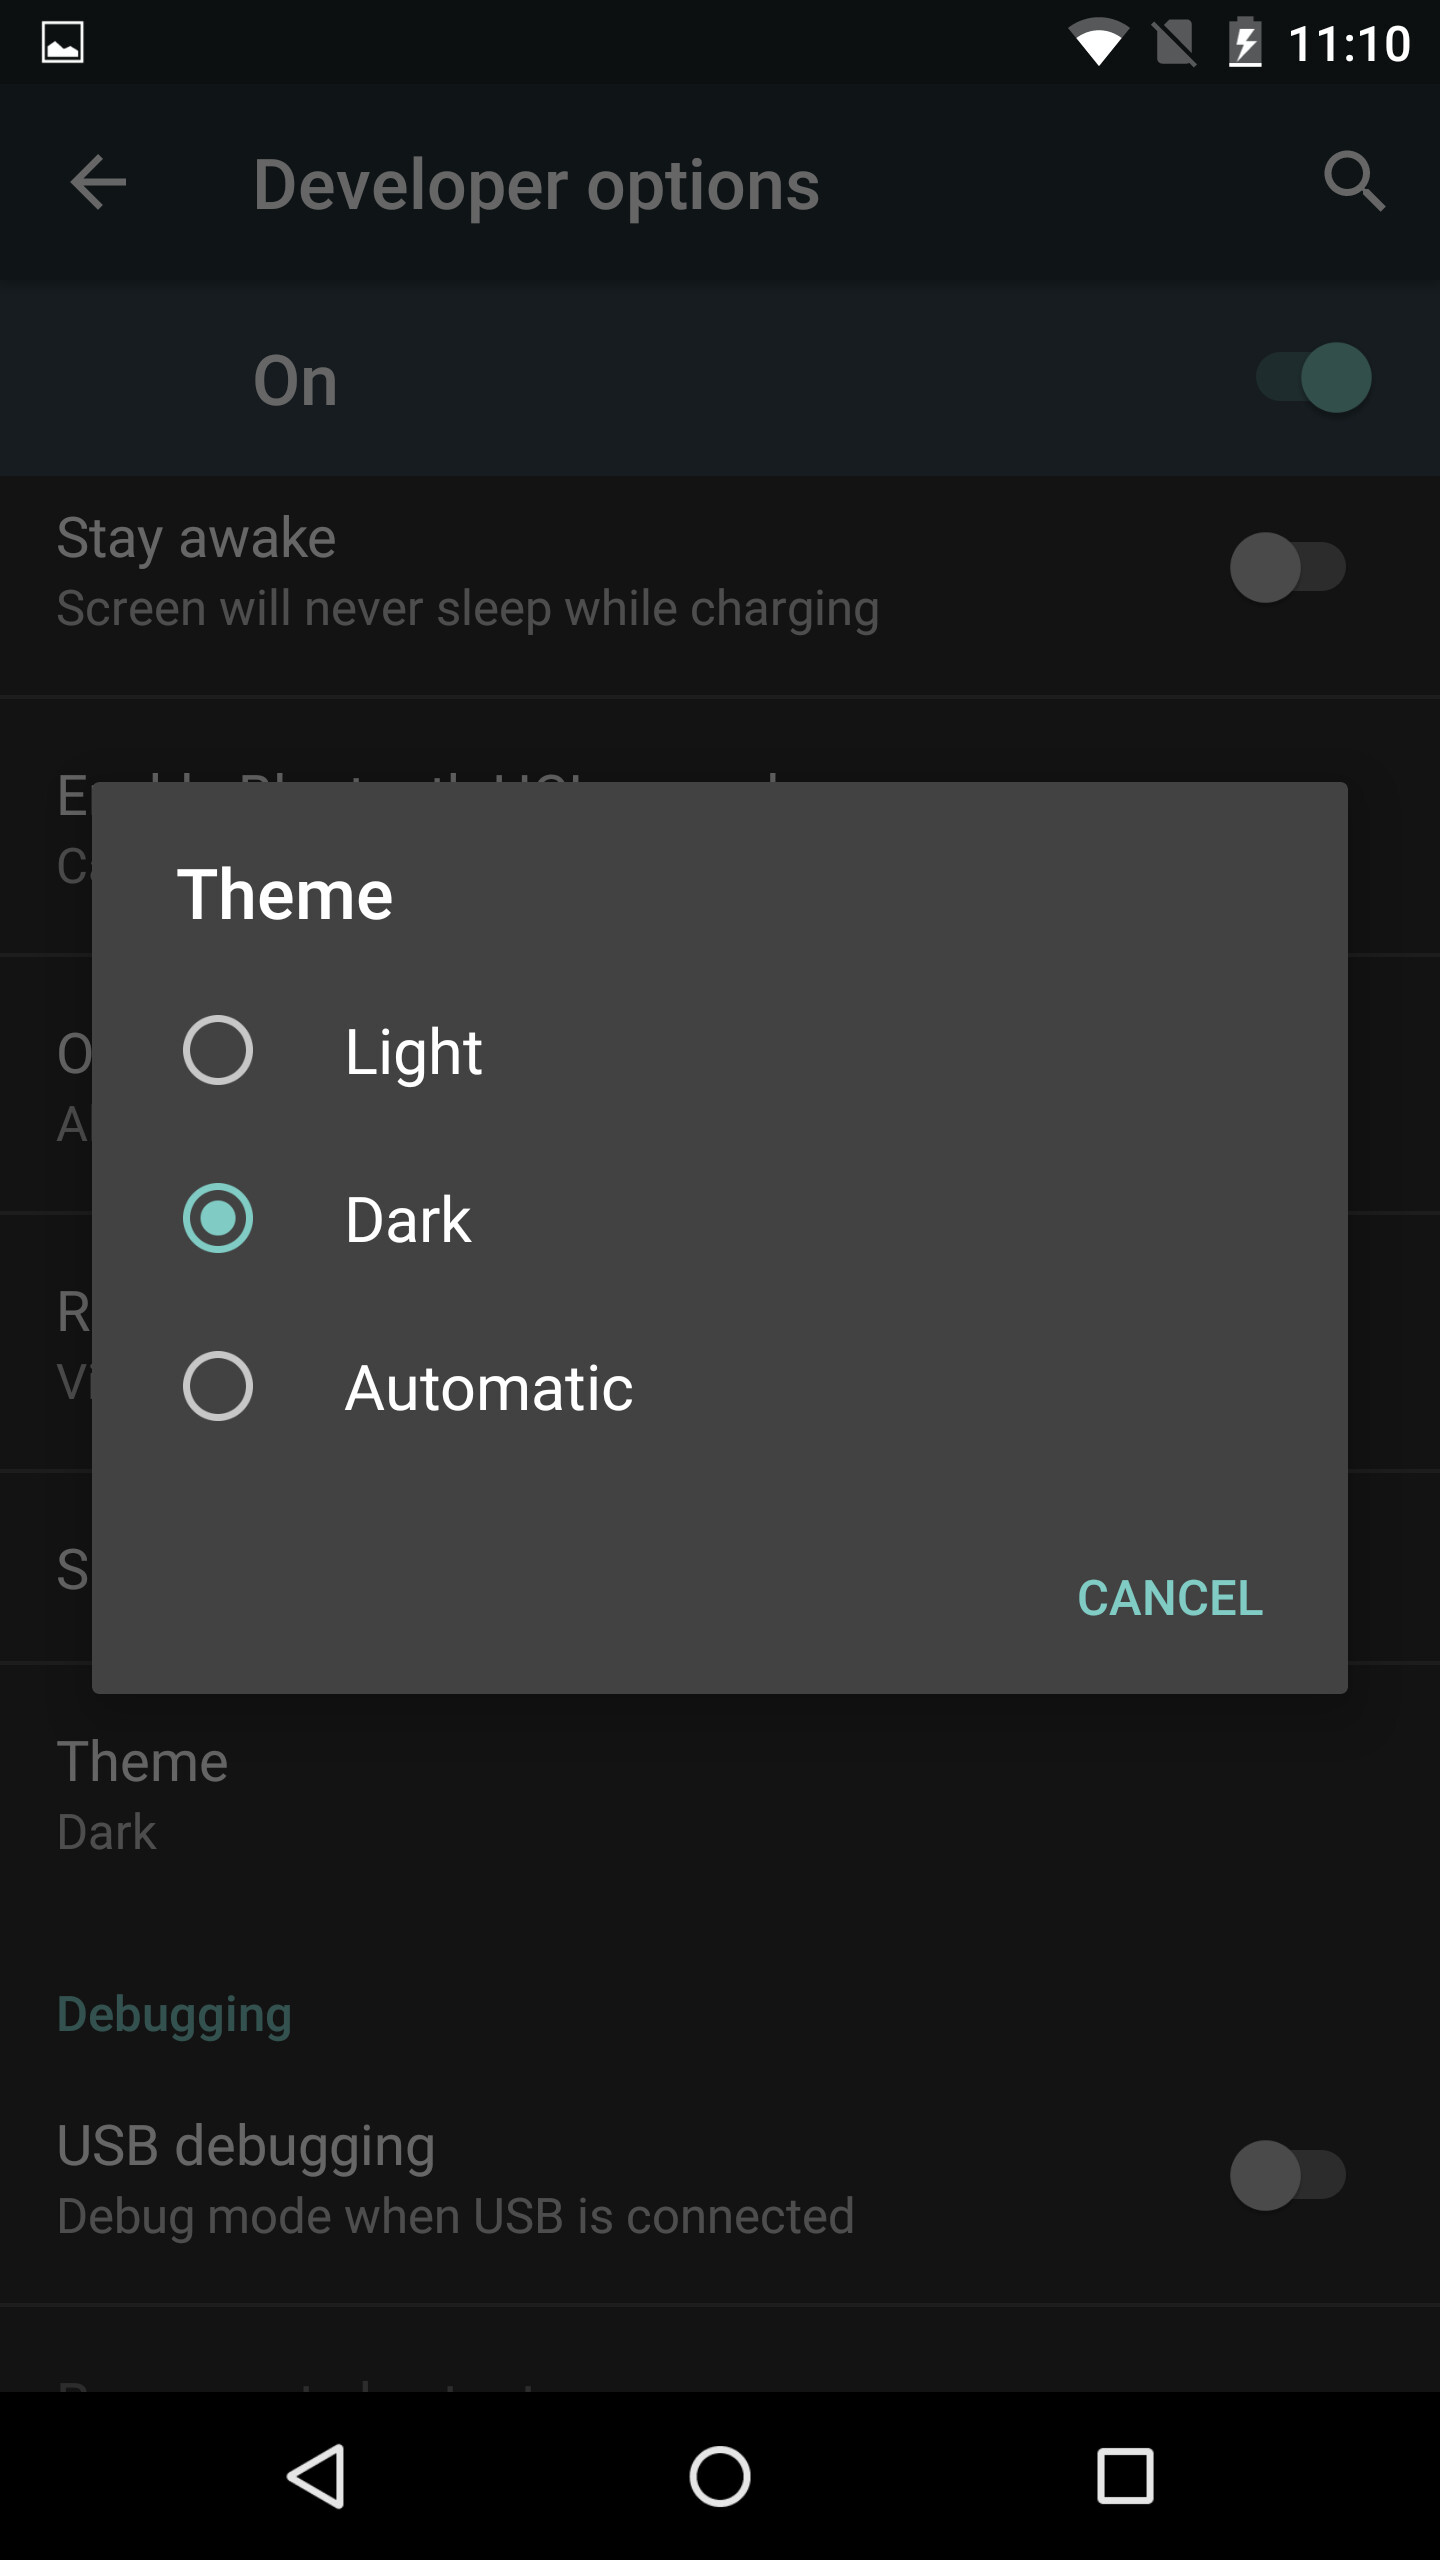 Finally Android M Incorporates a Dark Theme for The Interface